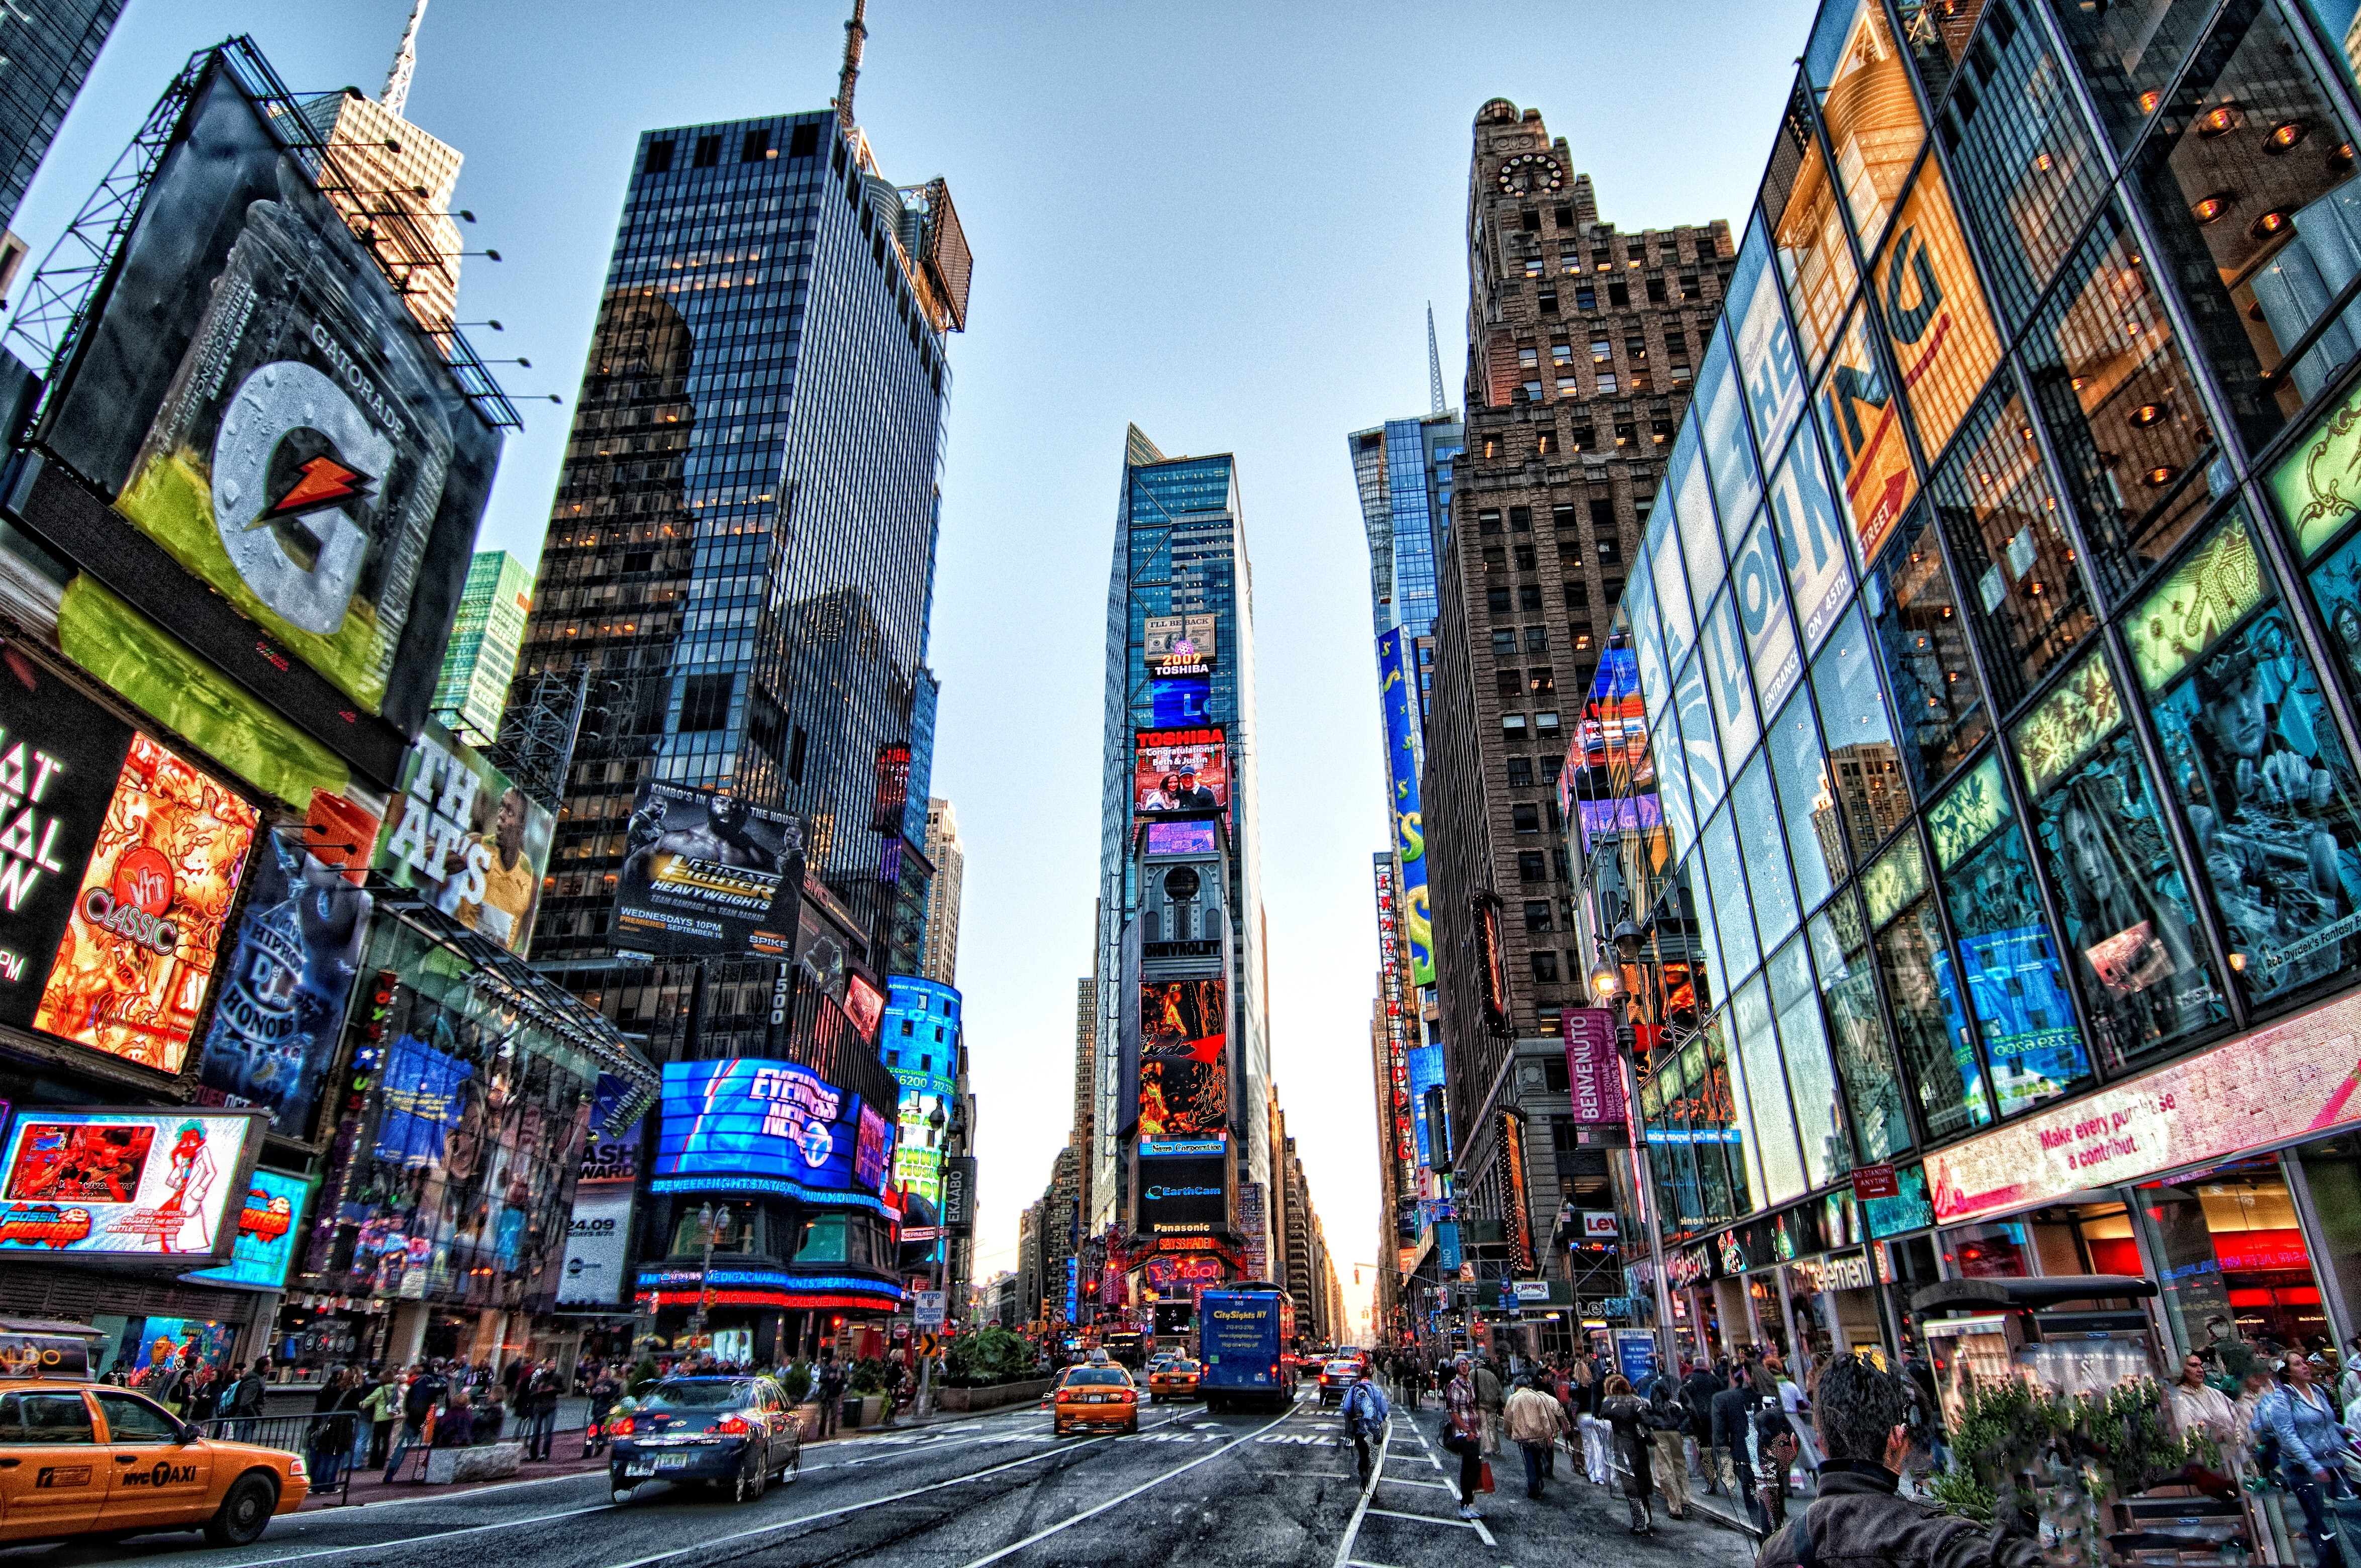 Amazing Wallpaper Of Times Square In New York City Hd Wallpapers